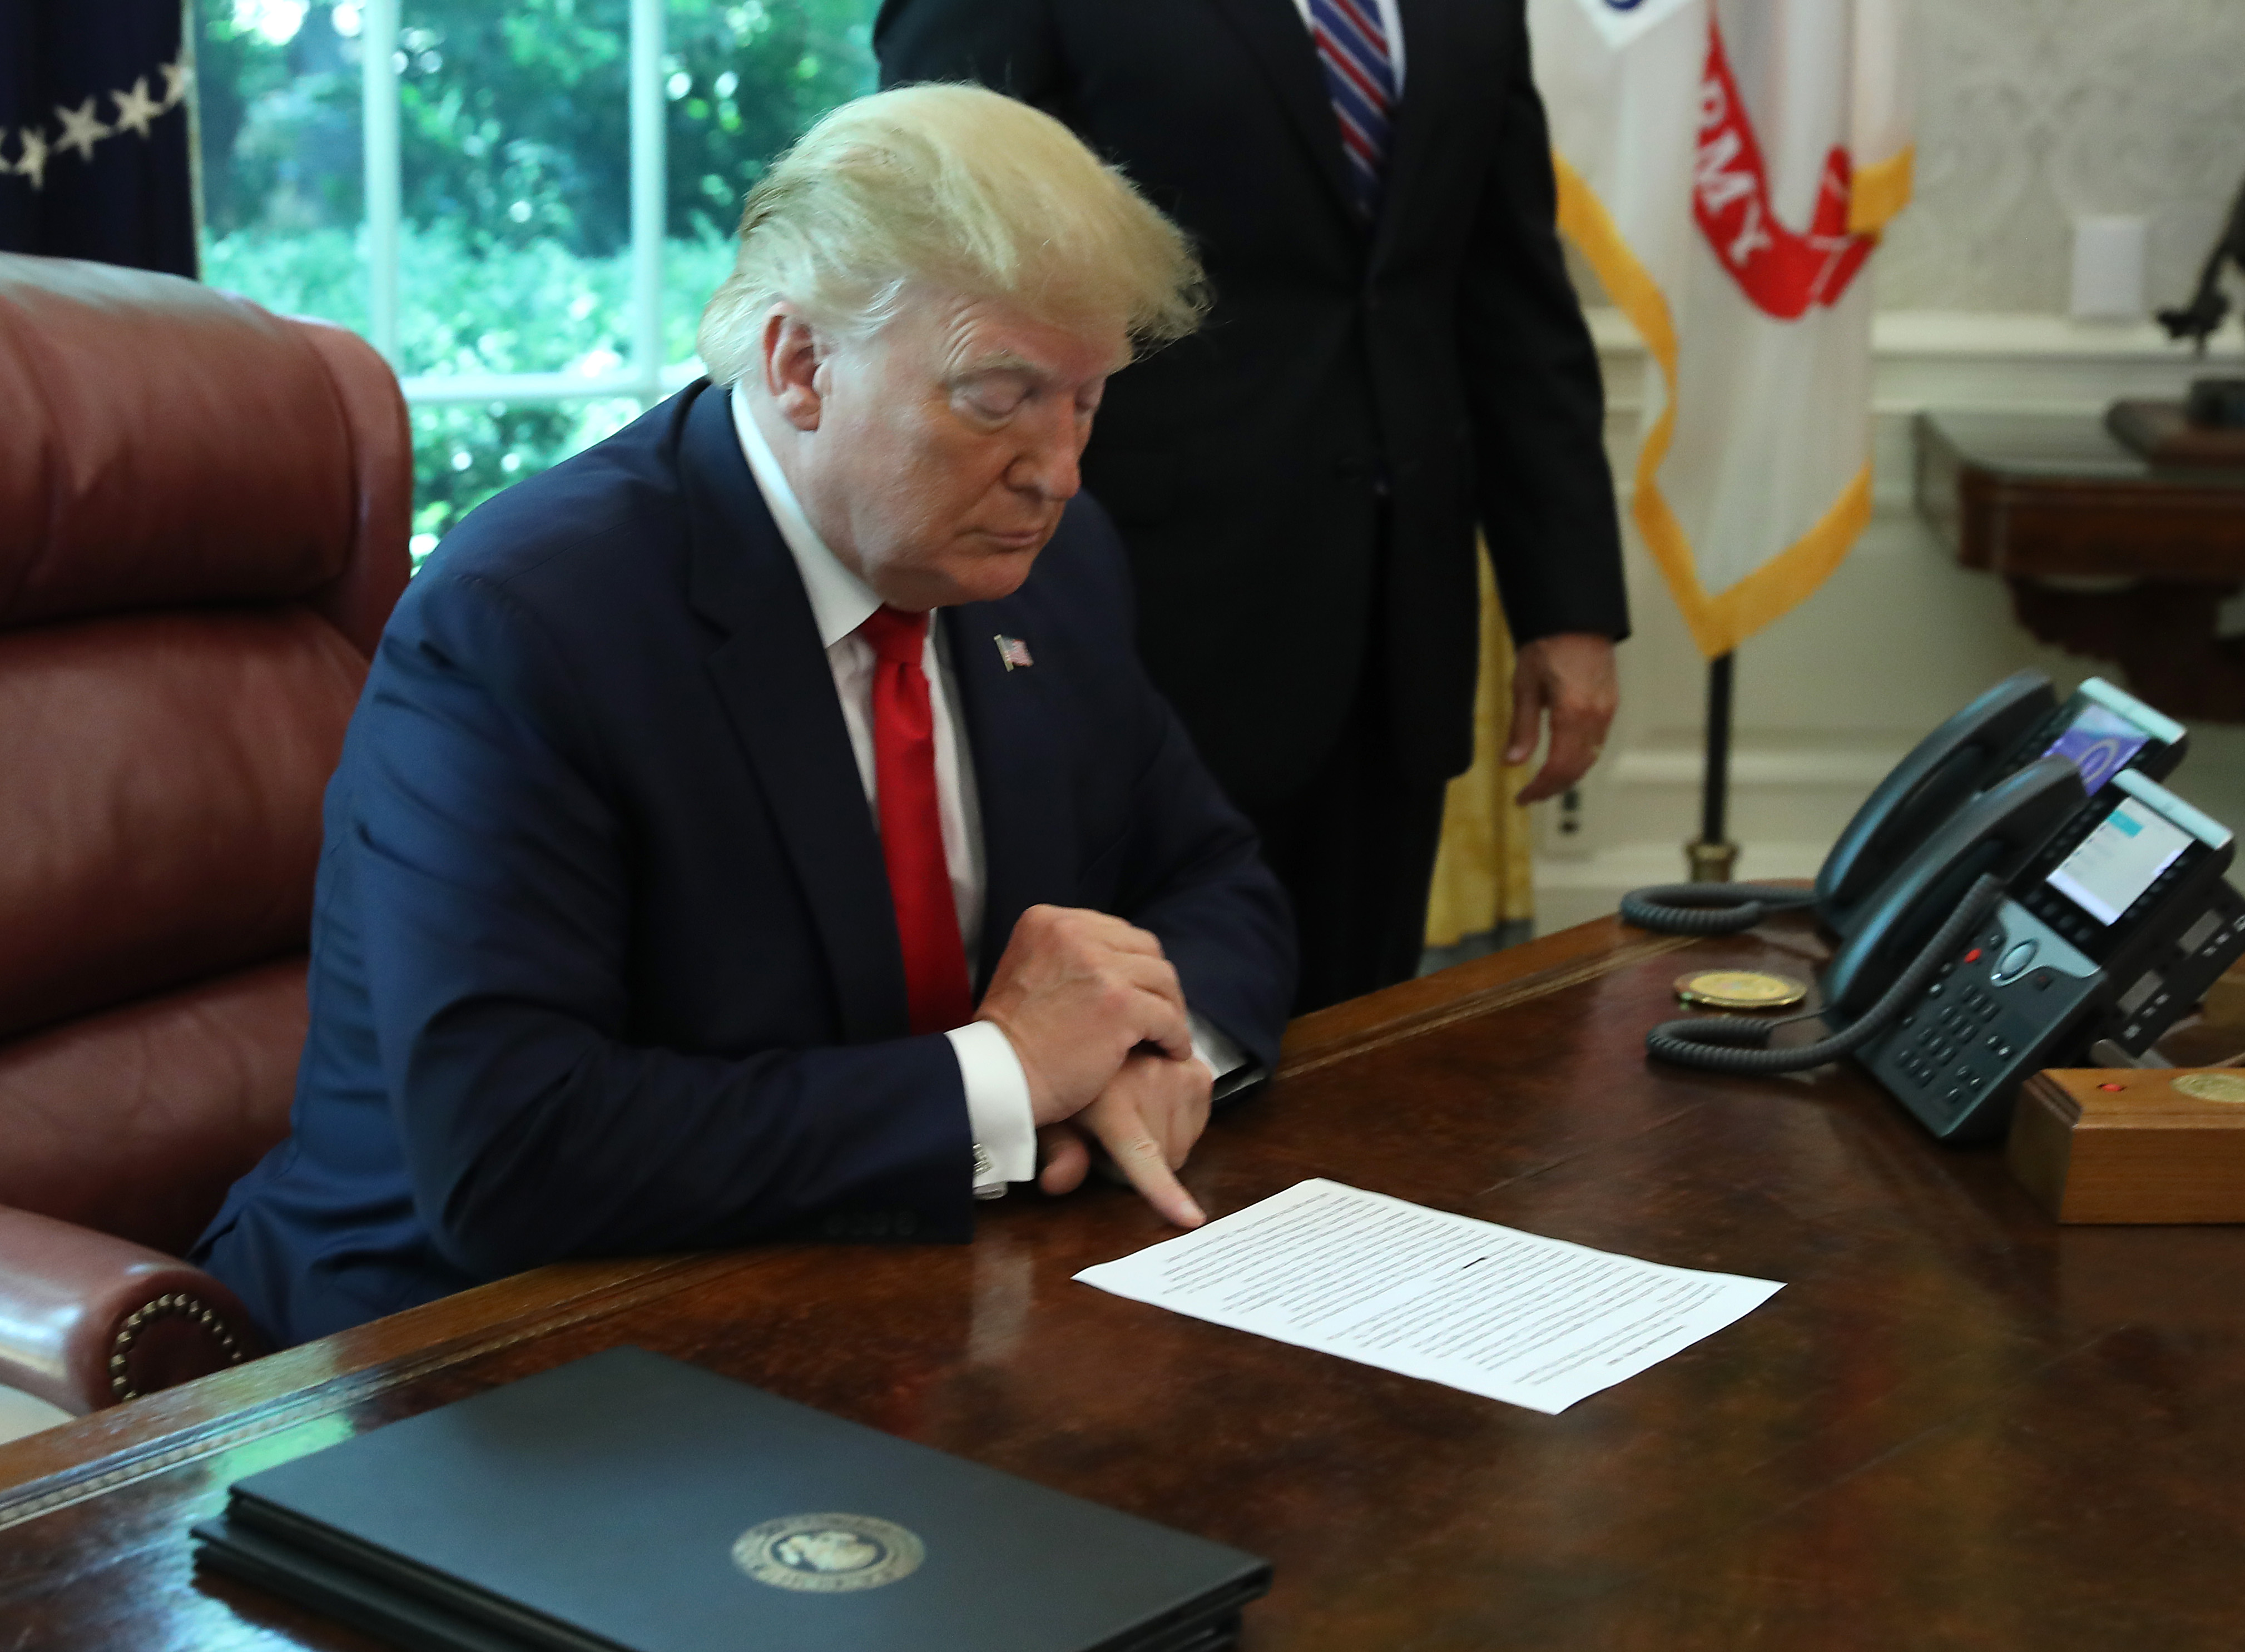 President Donald Trump signing an executive order imposing new sanctions on Iran on June 24, 2019.